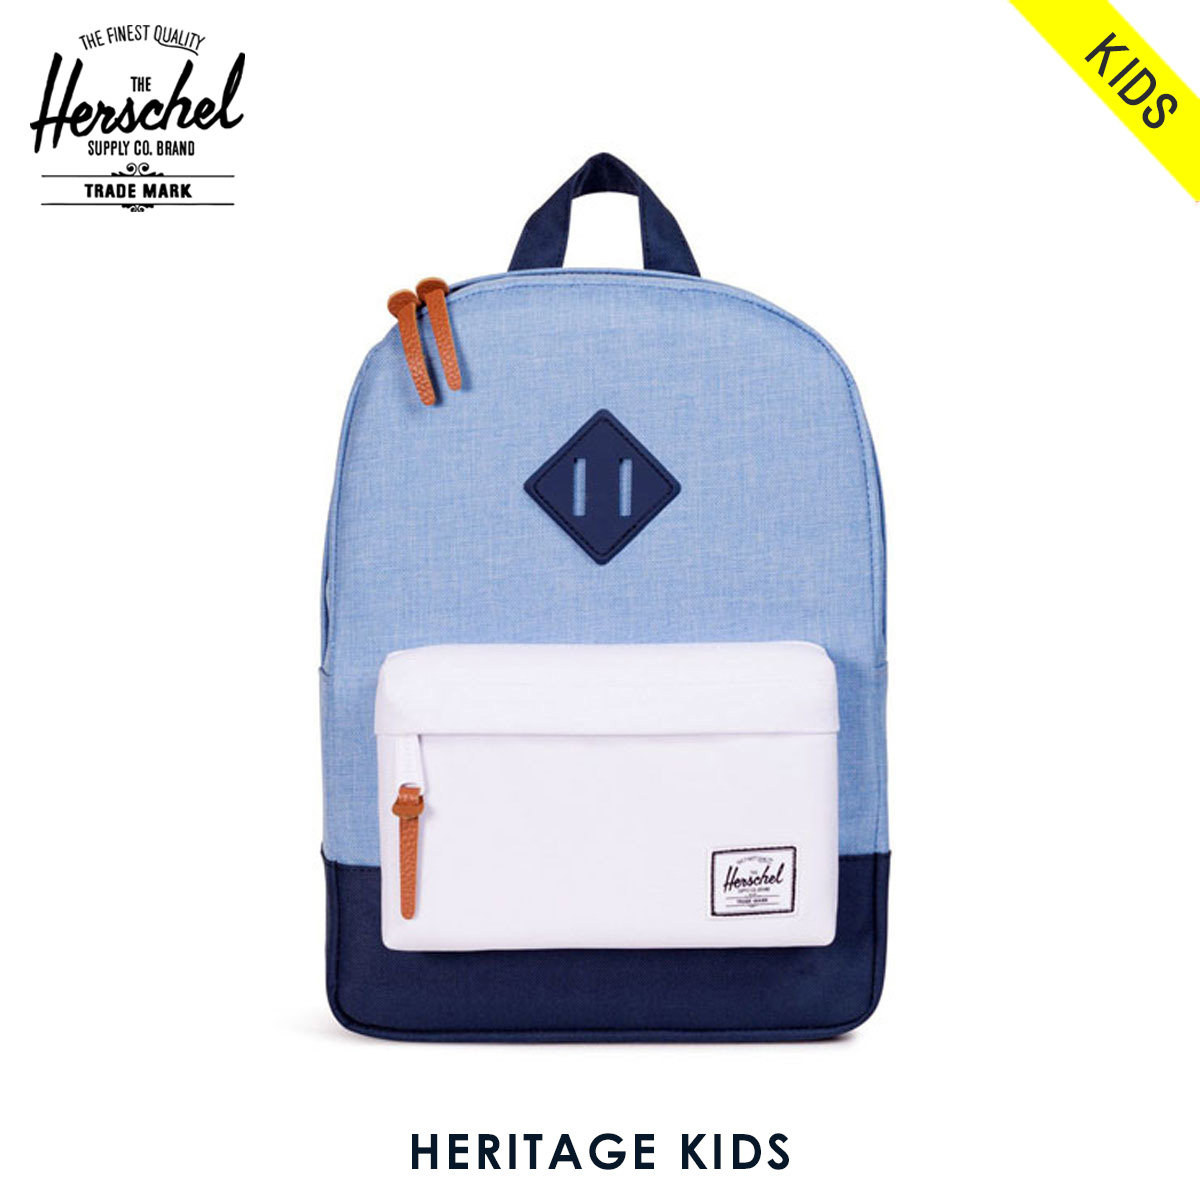 930fc8832f4 Rakuten Ichiba shop MIXON  Herschel Herschel Supply regular sale stores  children s bags backpack KIDS KIDS HERITAGE 10073-01080-OS  CHAMBRAK NAVK white NAVK ...